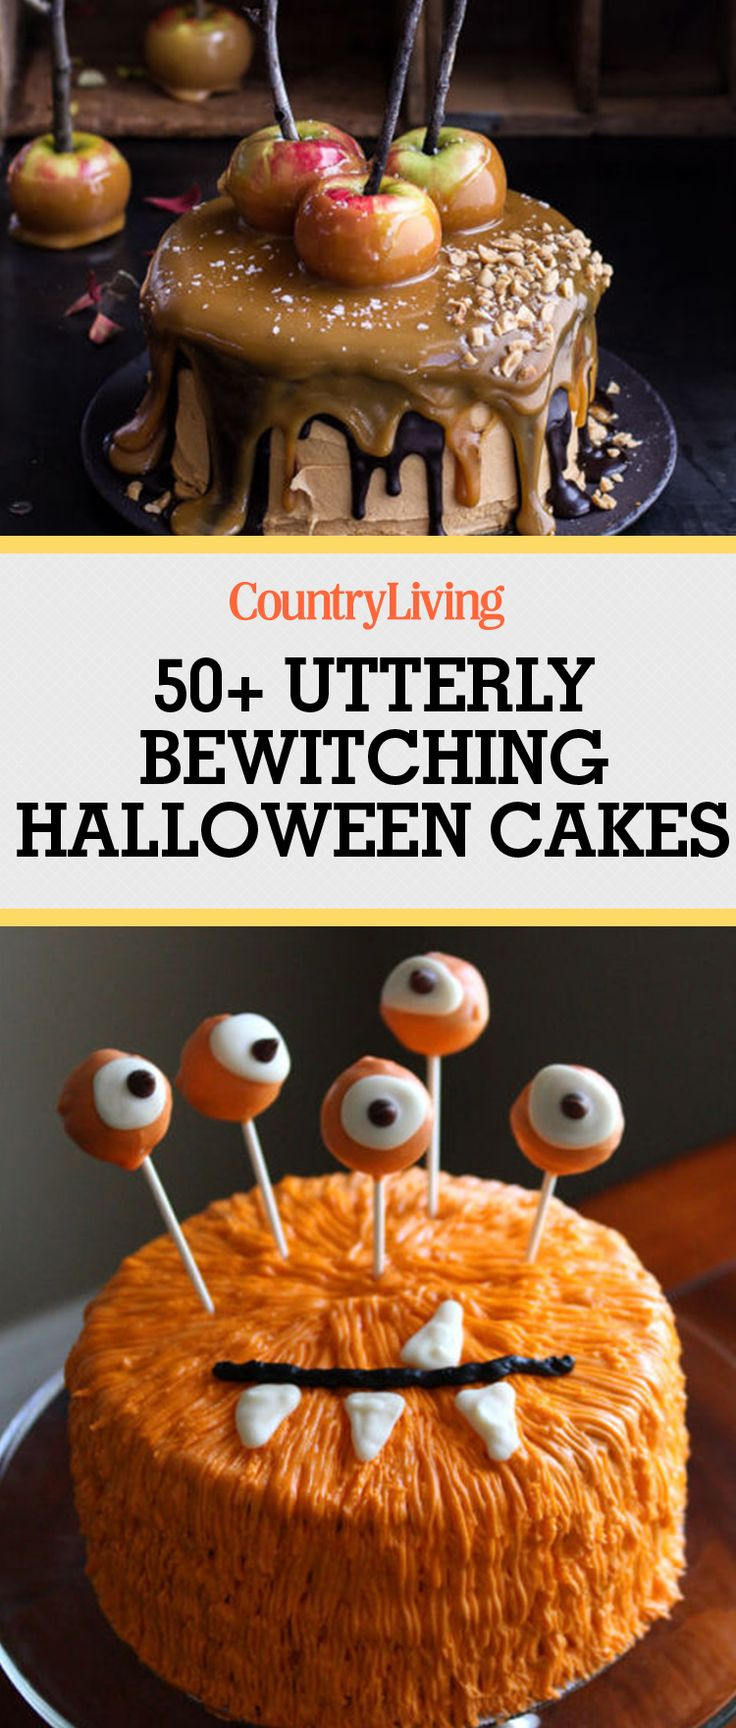 60 utterly bewitching halloween cakes - Easy To Make Halloween Cakes